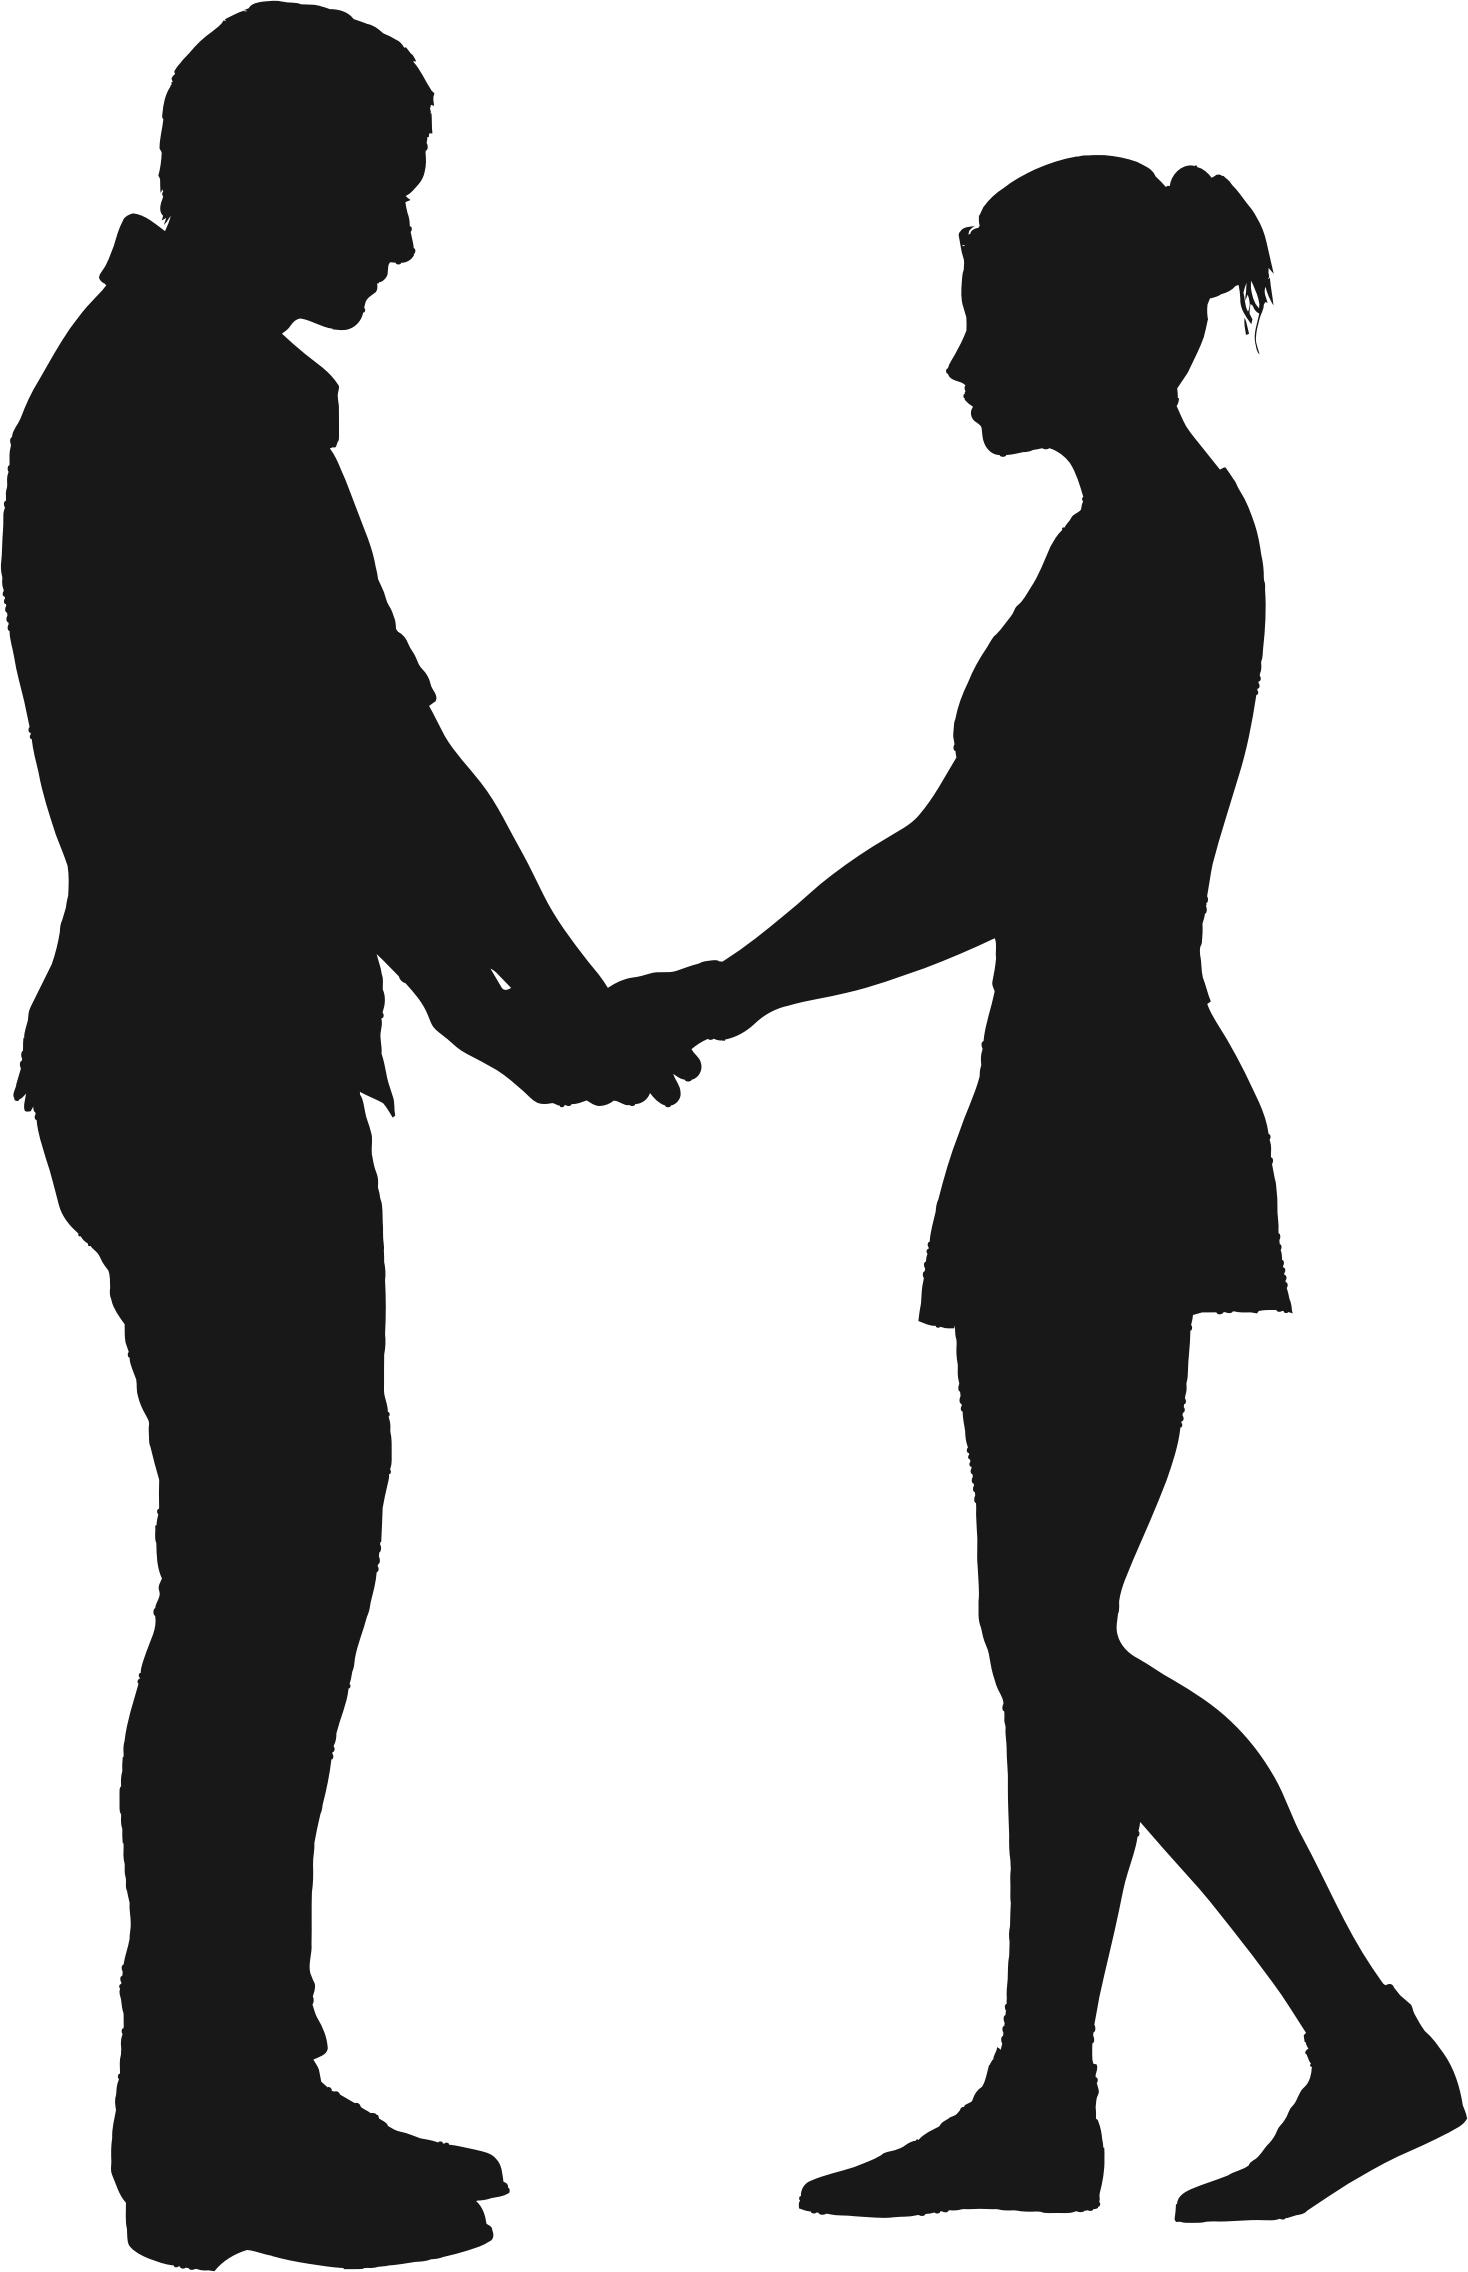 1468x2272 Couple Silhouette 6 Icons Png